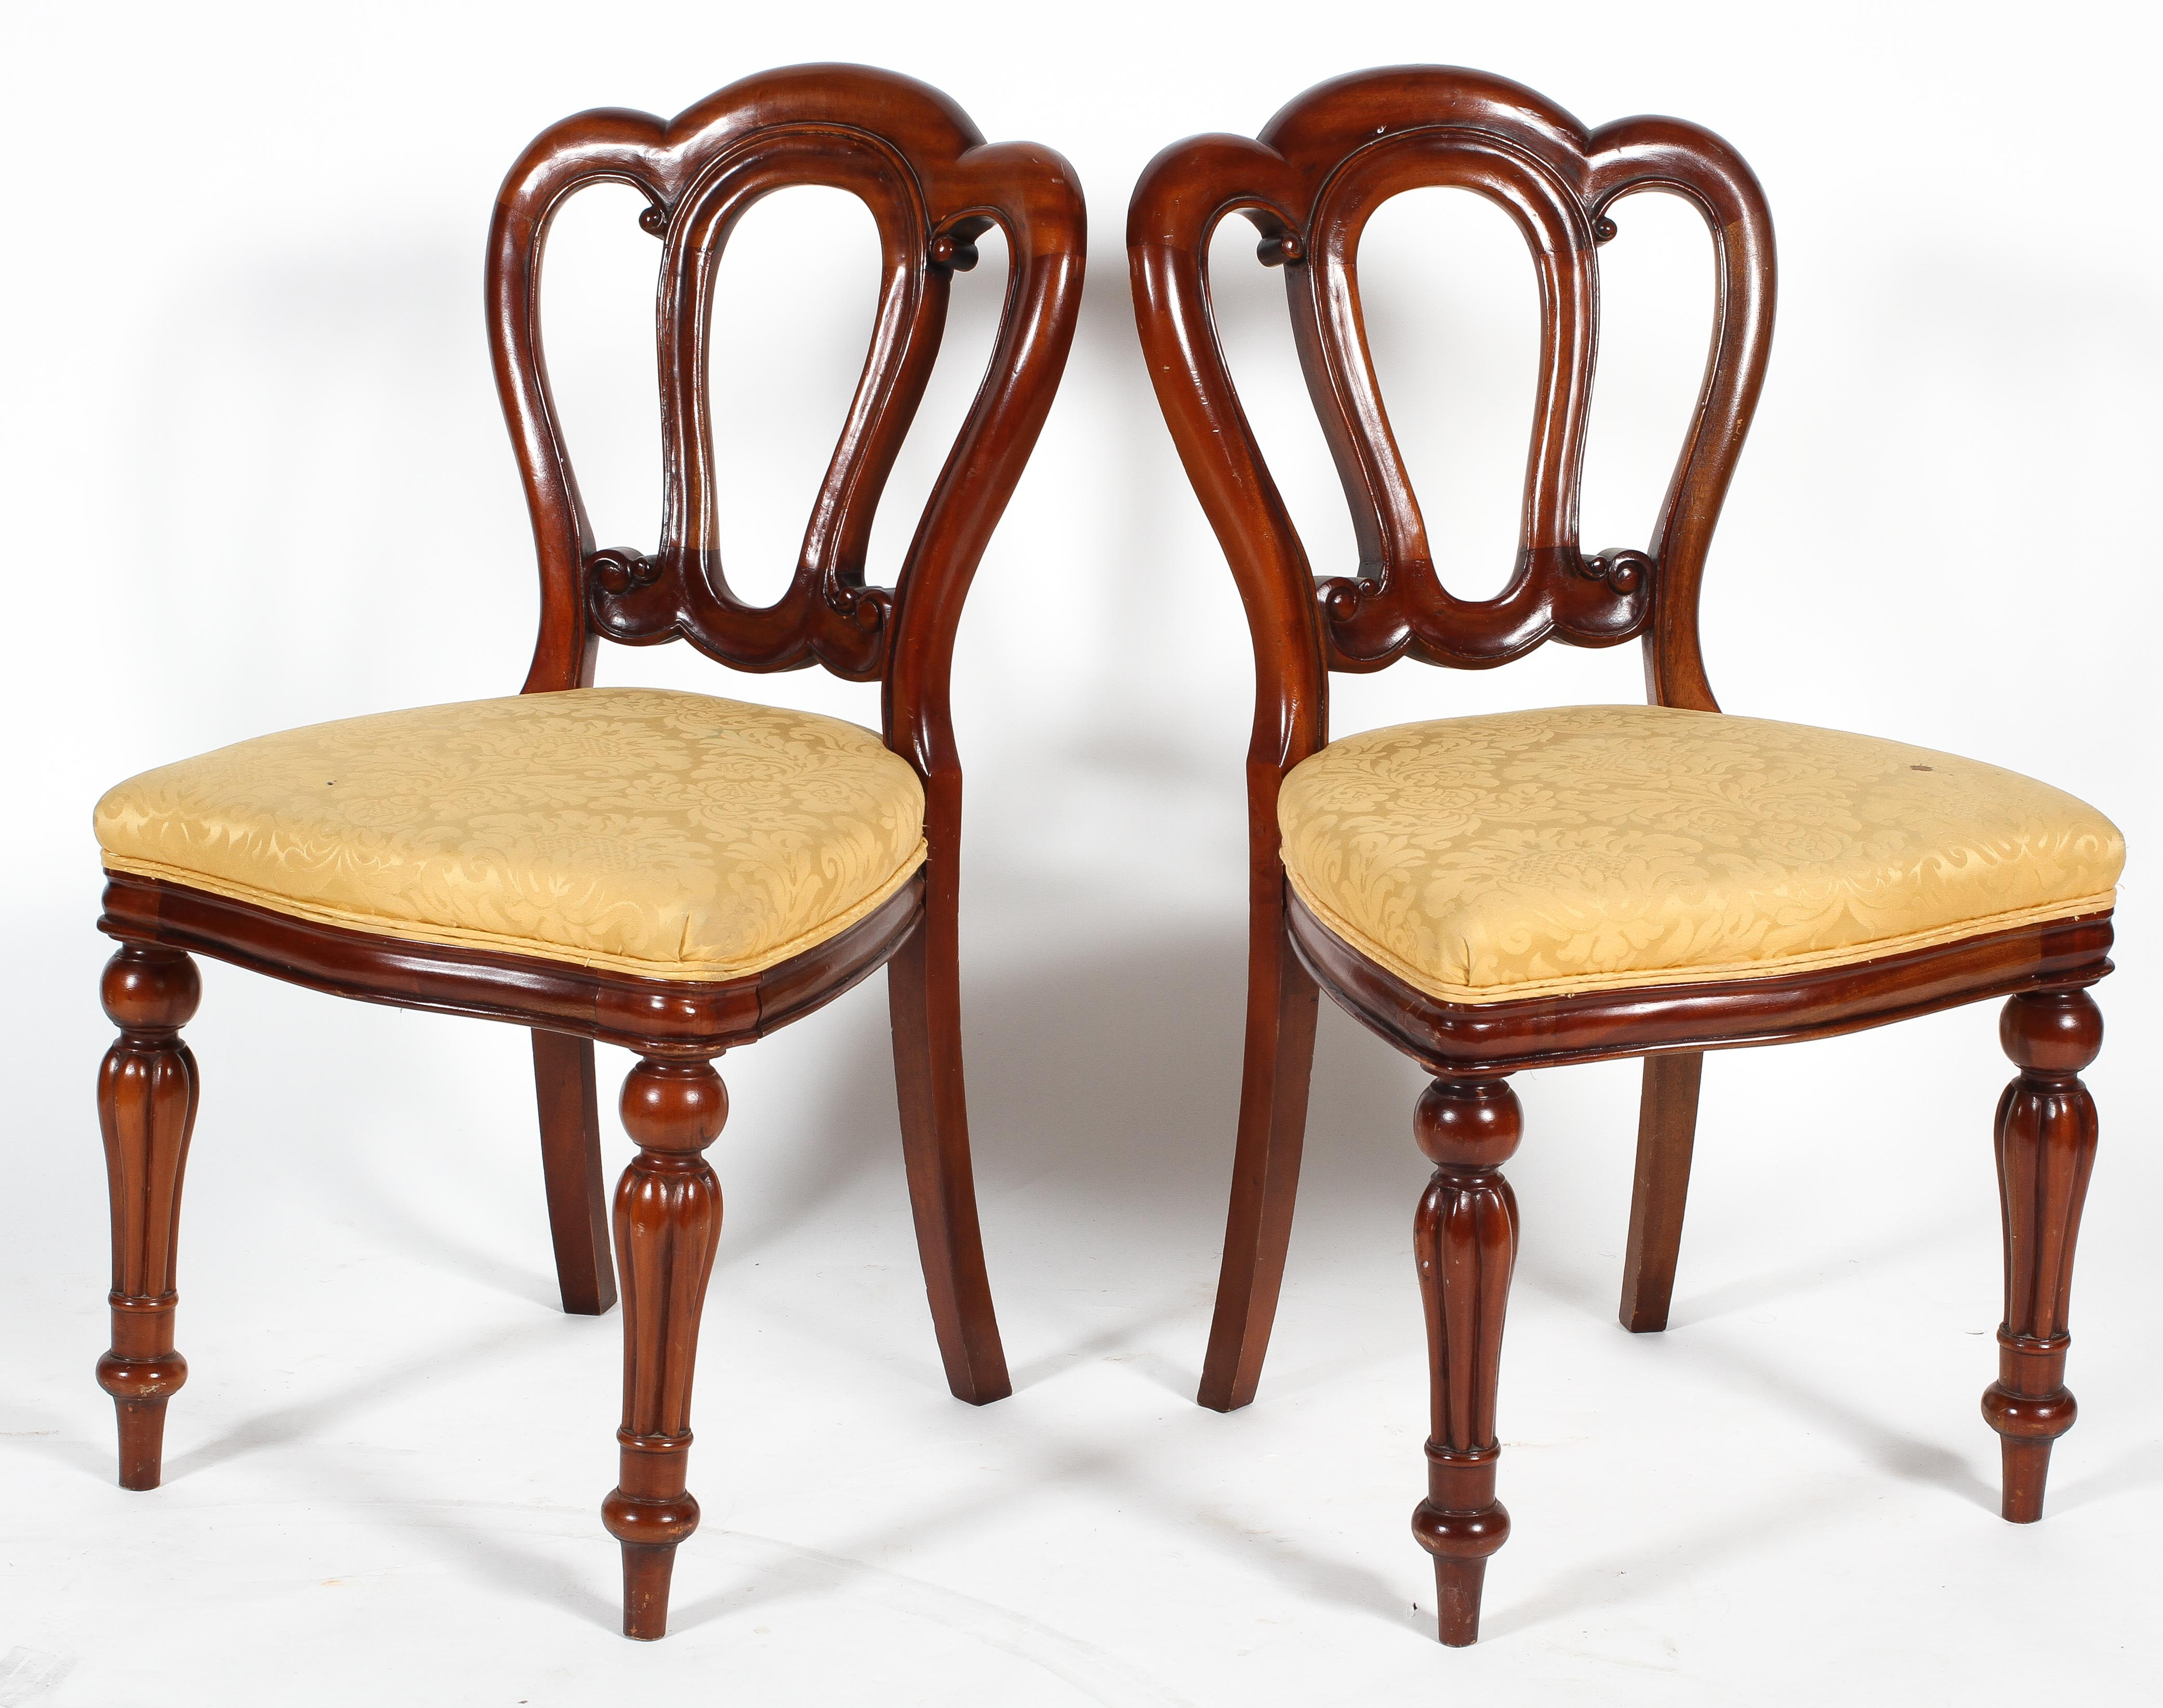 A set of six Victorian style mahogany balloon back dining chairs, with triple arched backs, - Image 2 of 2